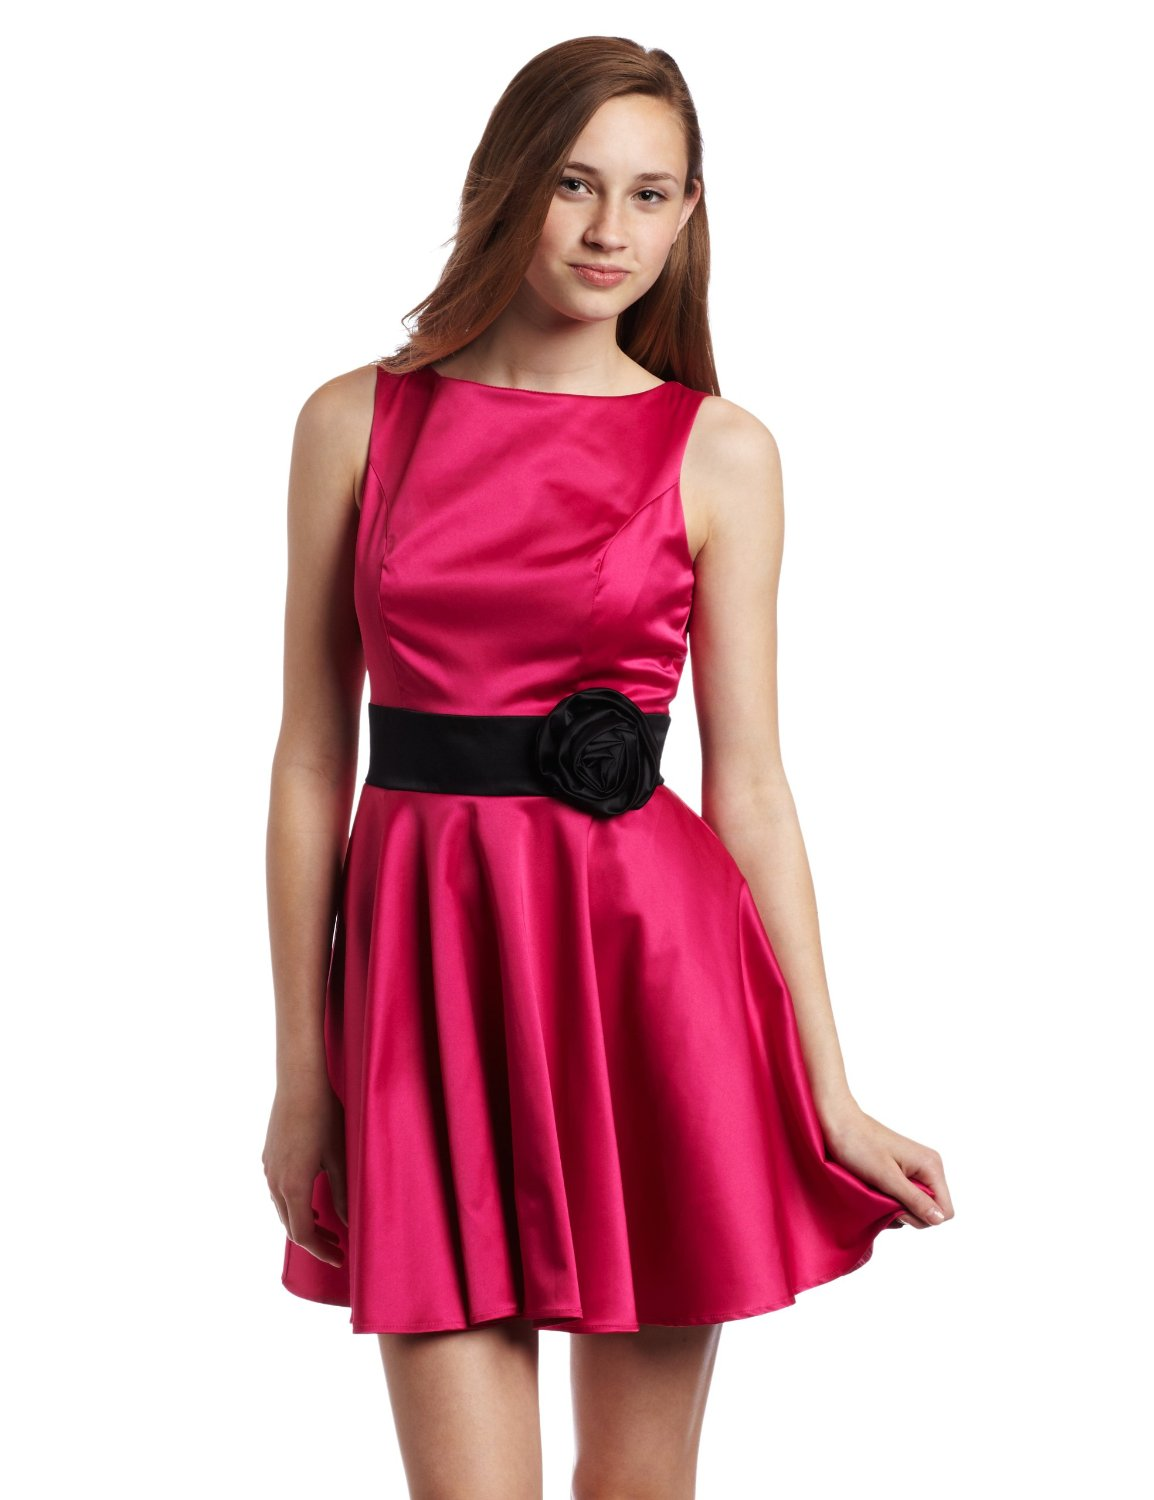 Black And Pink Dresses For Women